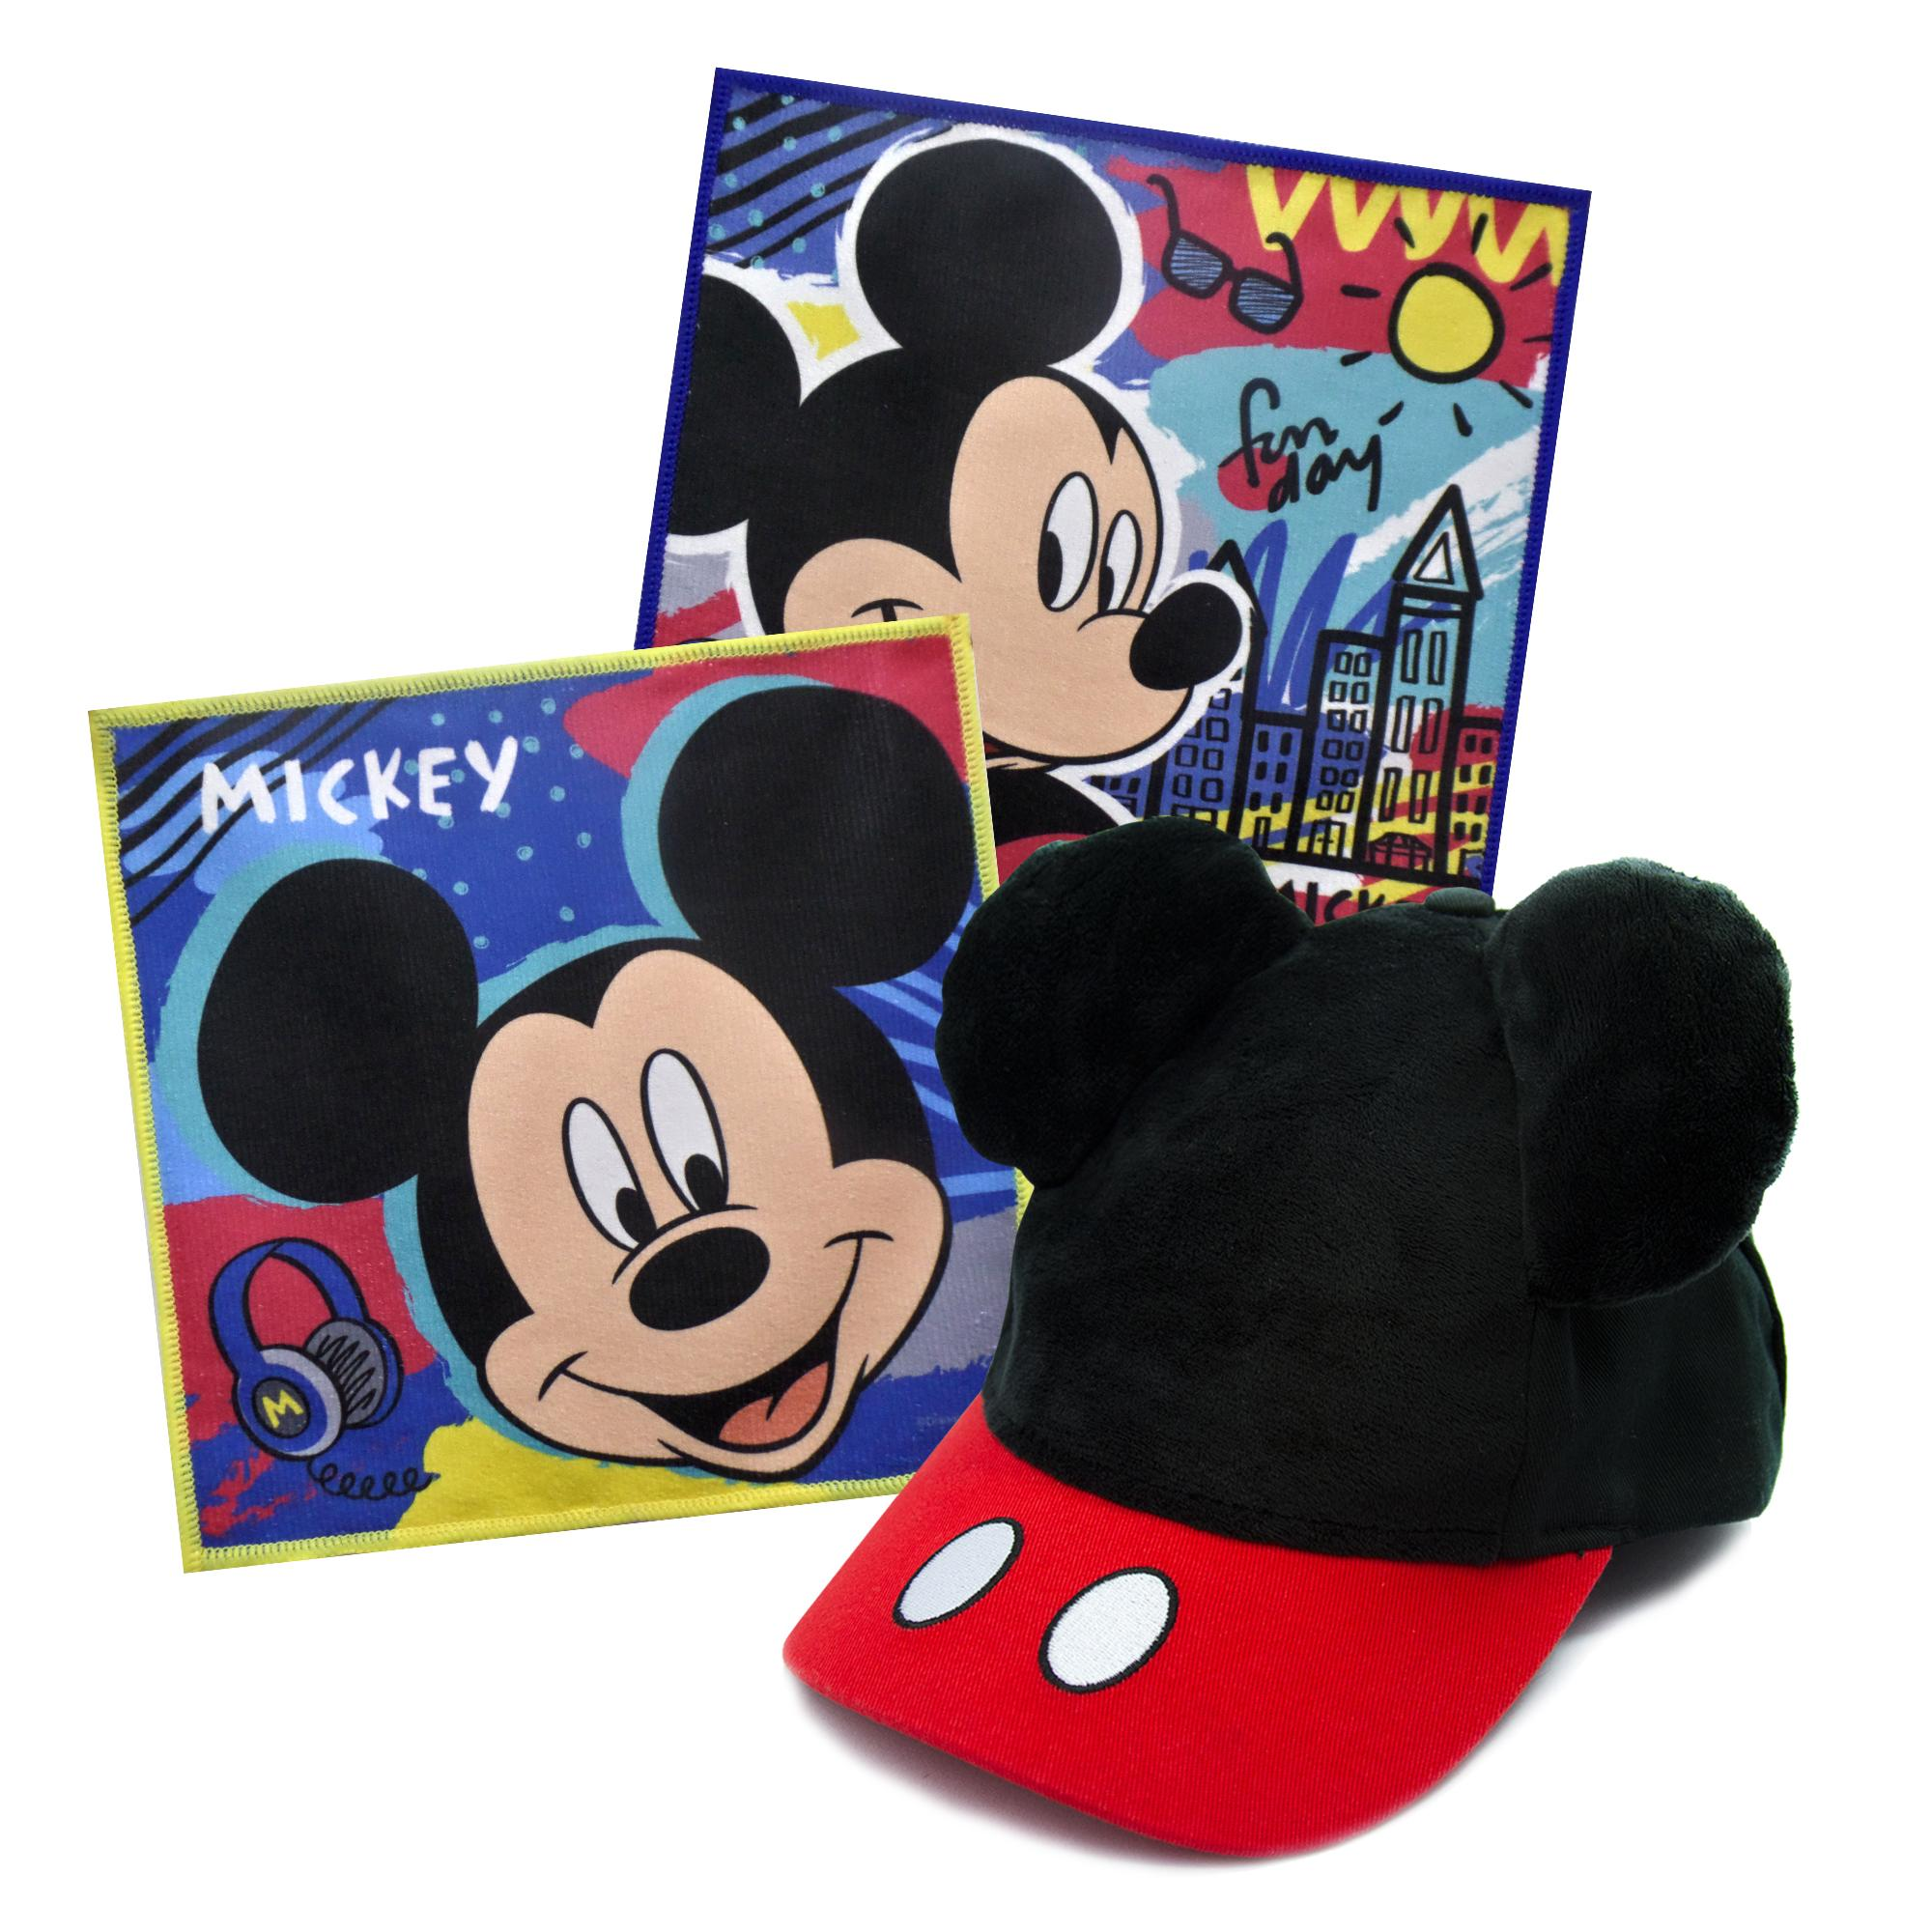 2743cf3e09a12 Disney Mickey Mouse Philippines  Disney Mickey Mouse price list ...